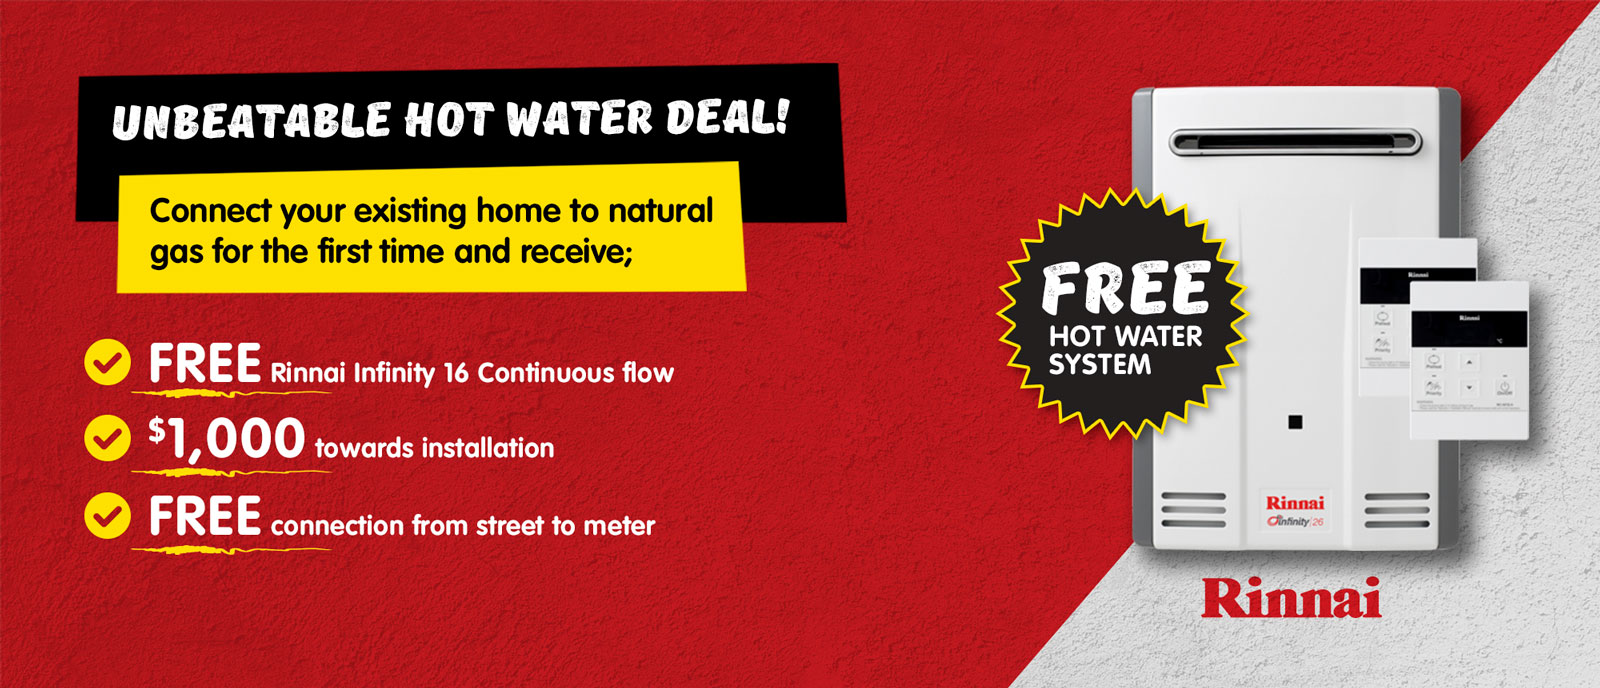 Rinnai Infinity 16 Continuous Flow Gas Hot Water Offer large